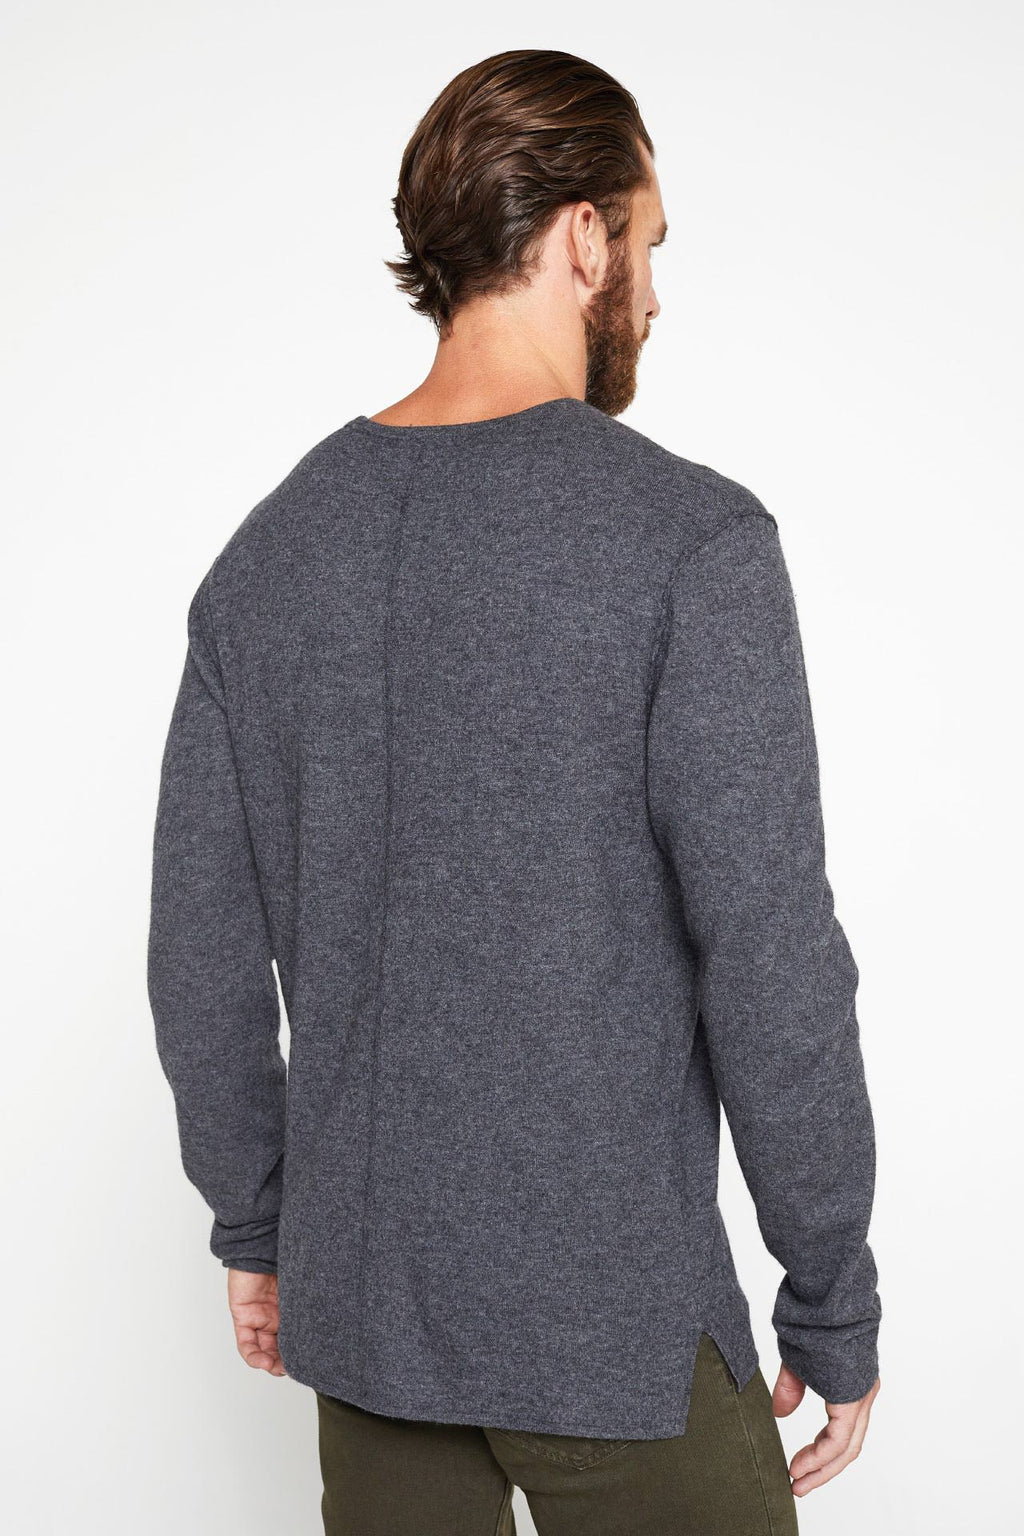 The Emmett Sweater in Charcoal_Back View